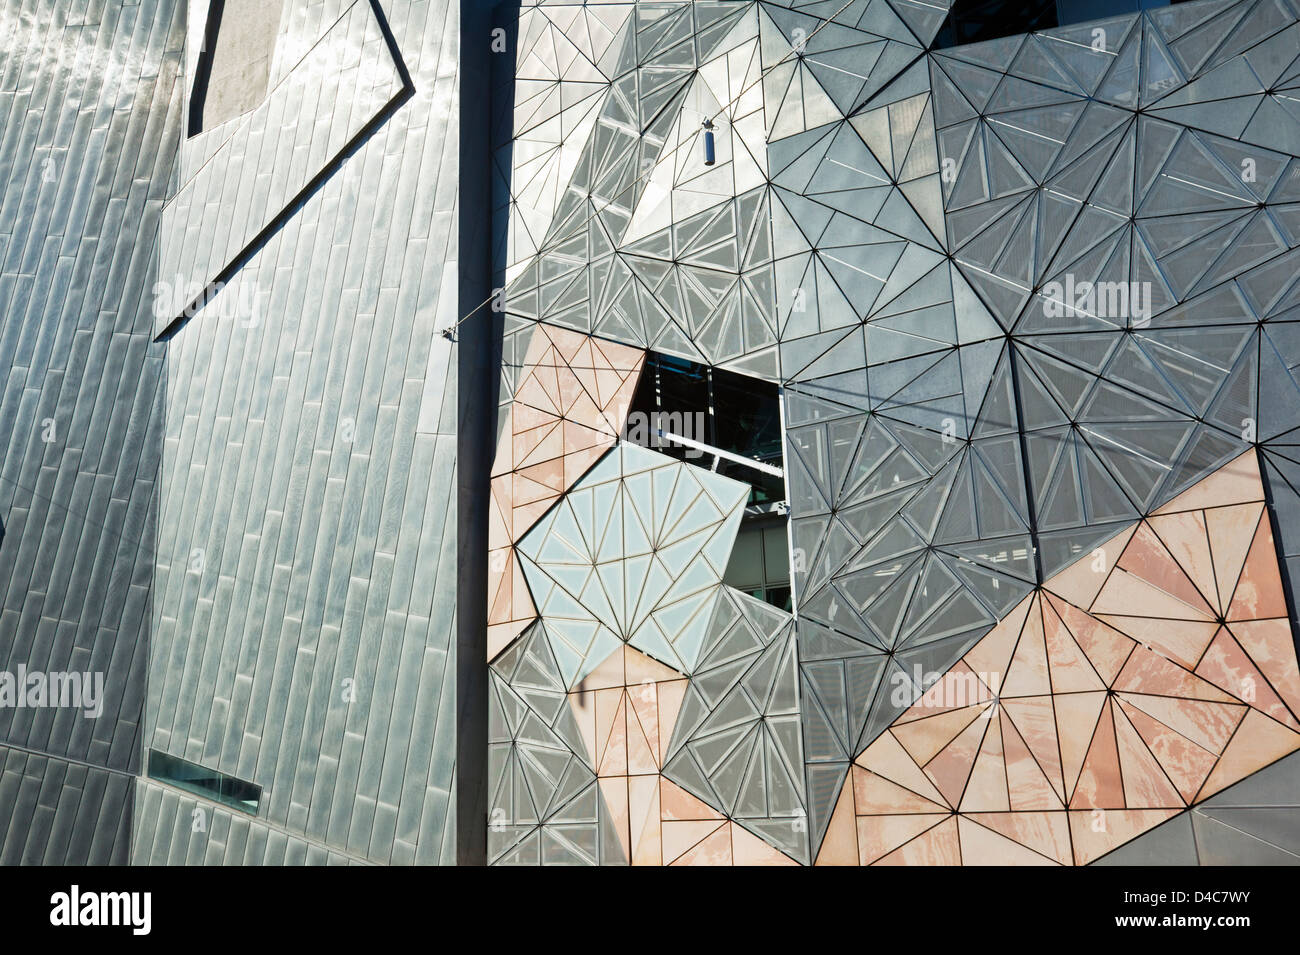 Iconic architecture of Federation Square. Melbourne, Victoria, Australia - Stock Image